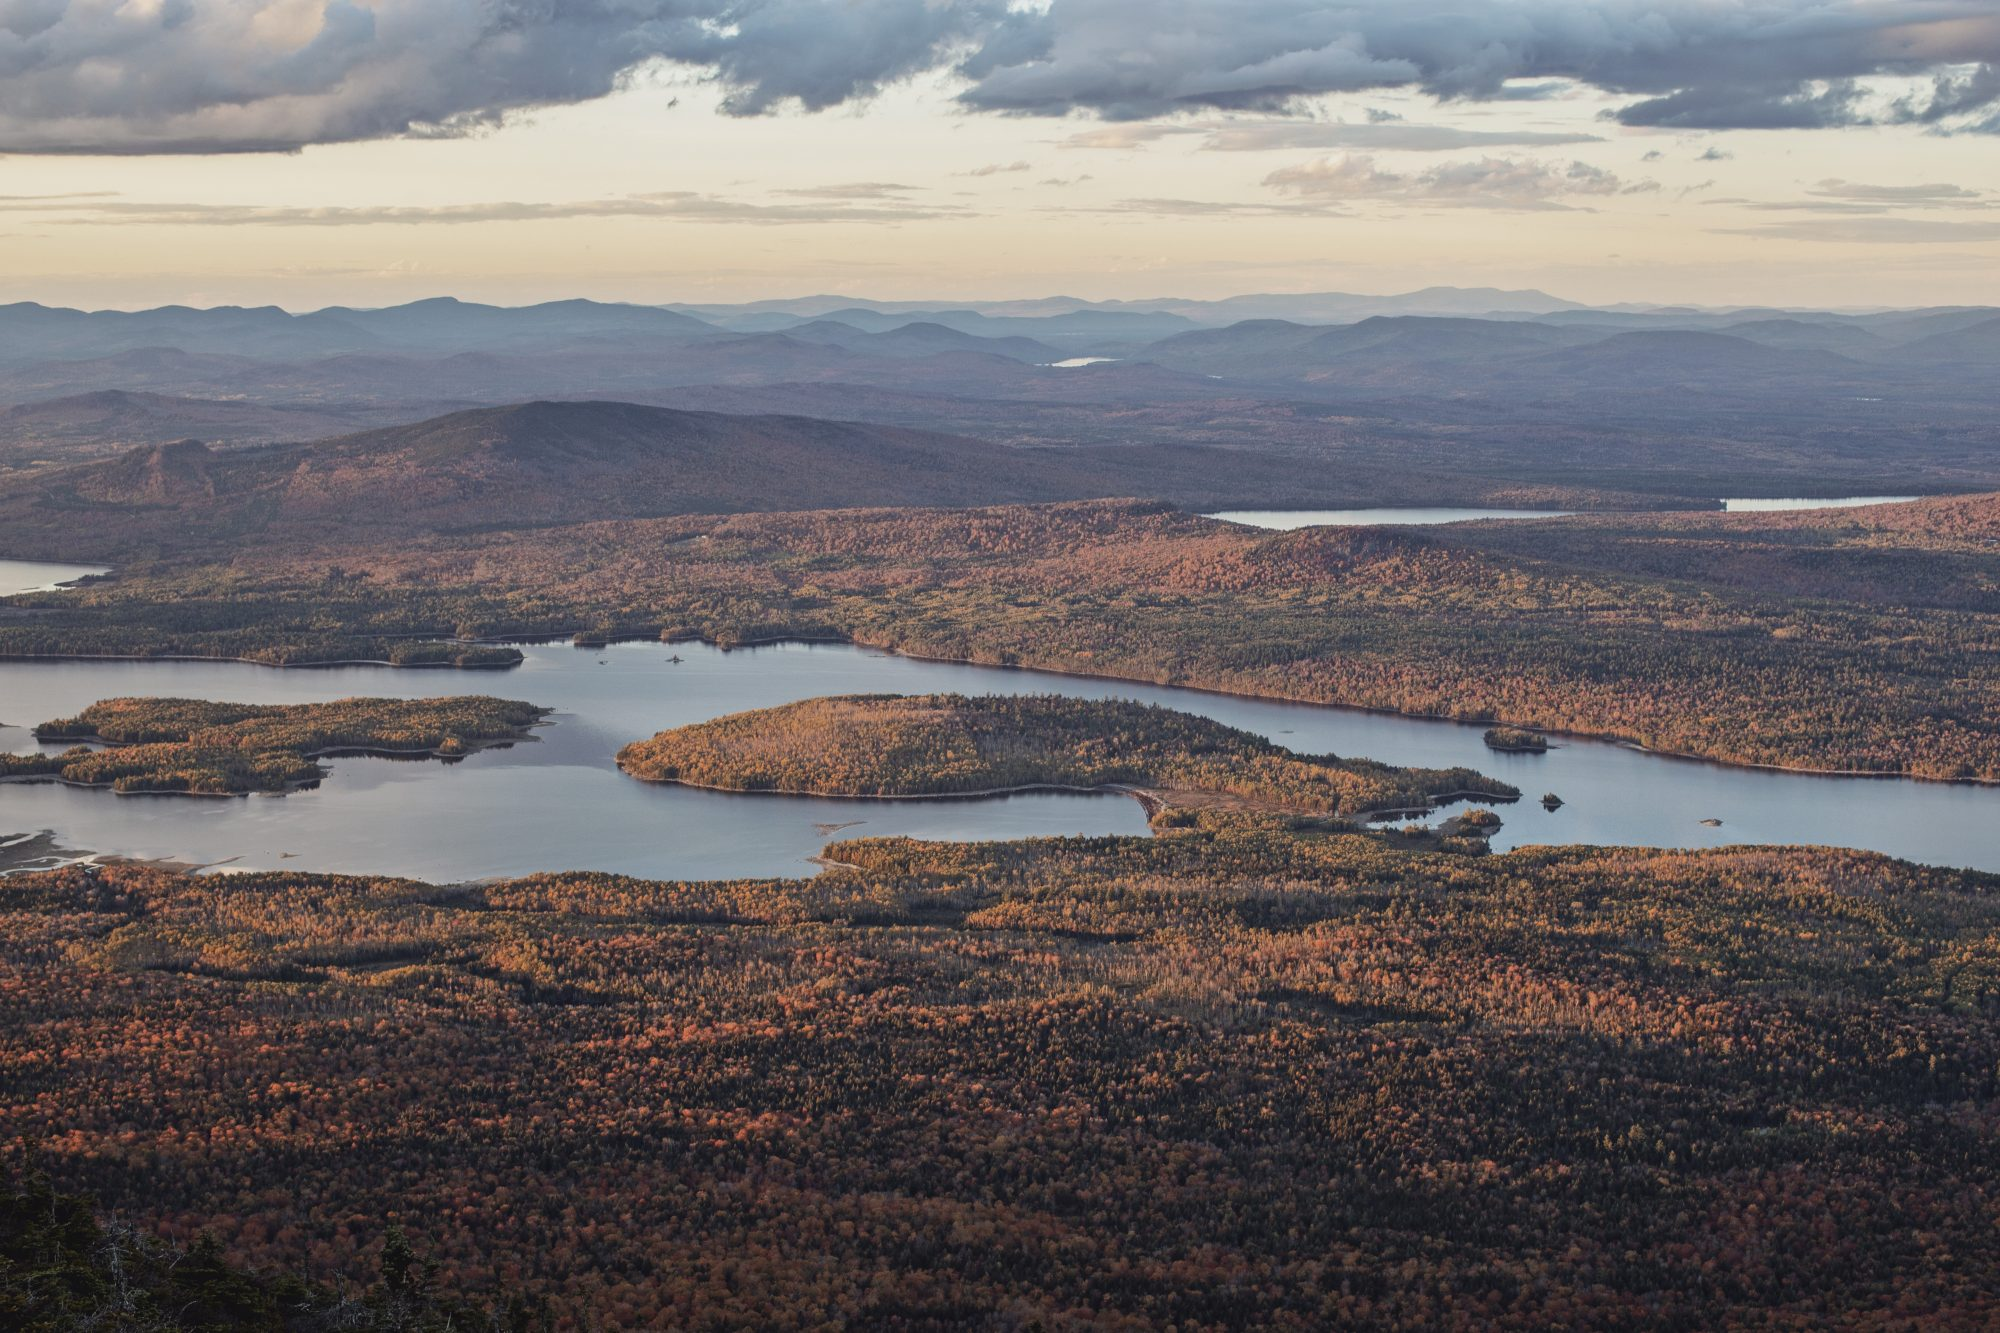 Fall foliage and Flagstaff Lake, Maine seen from Bigelow Maine